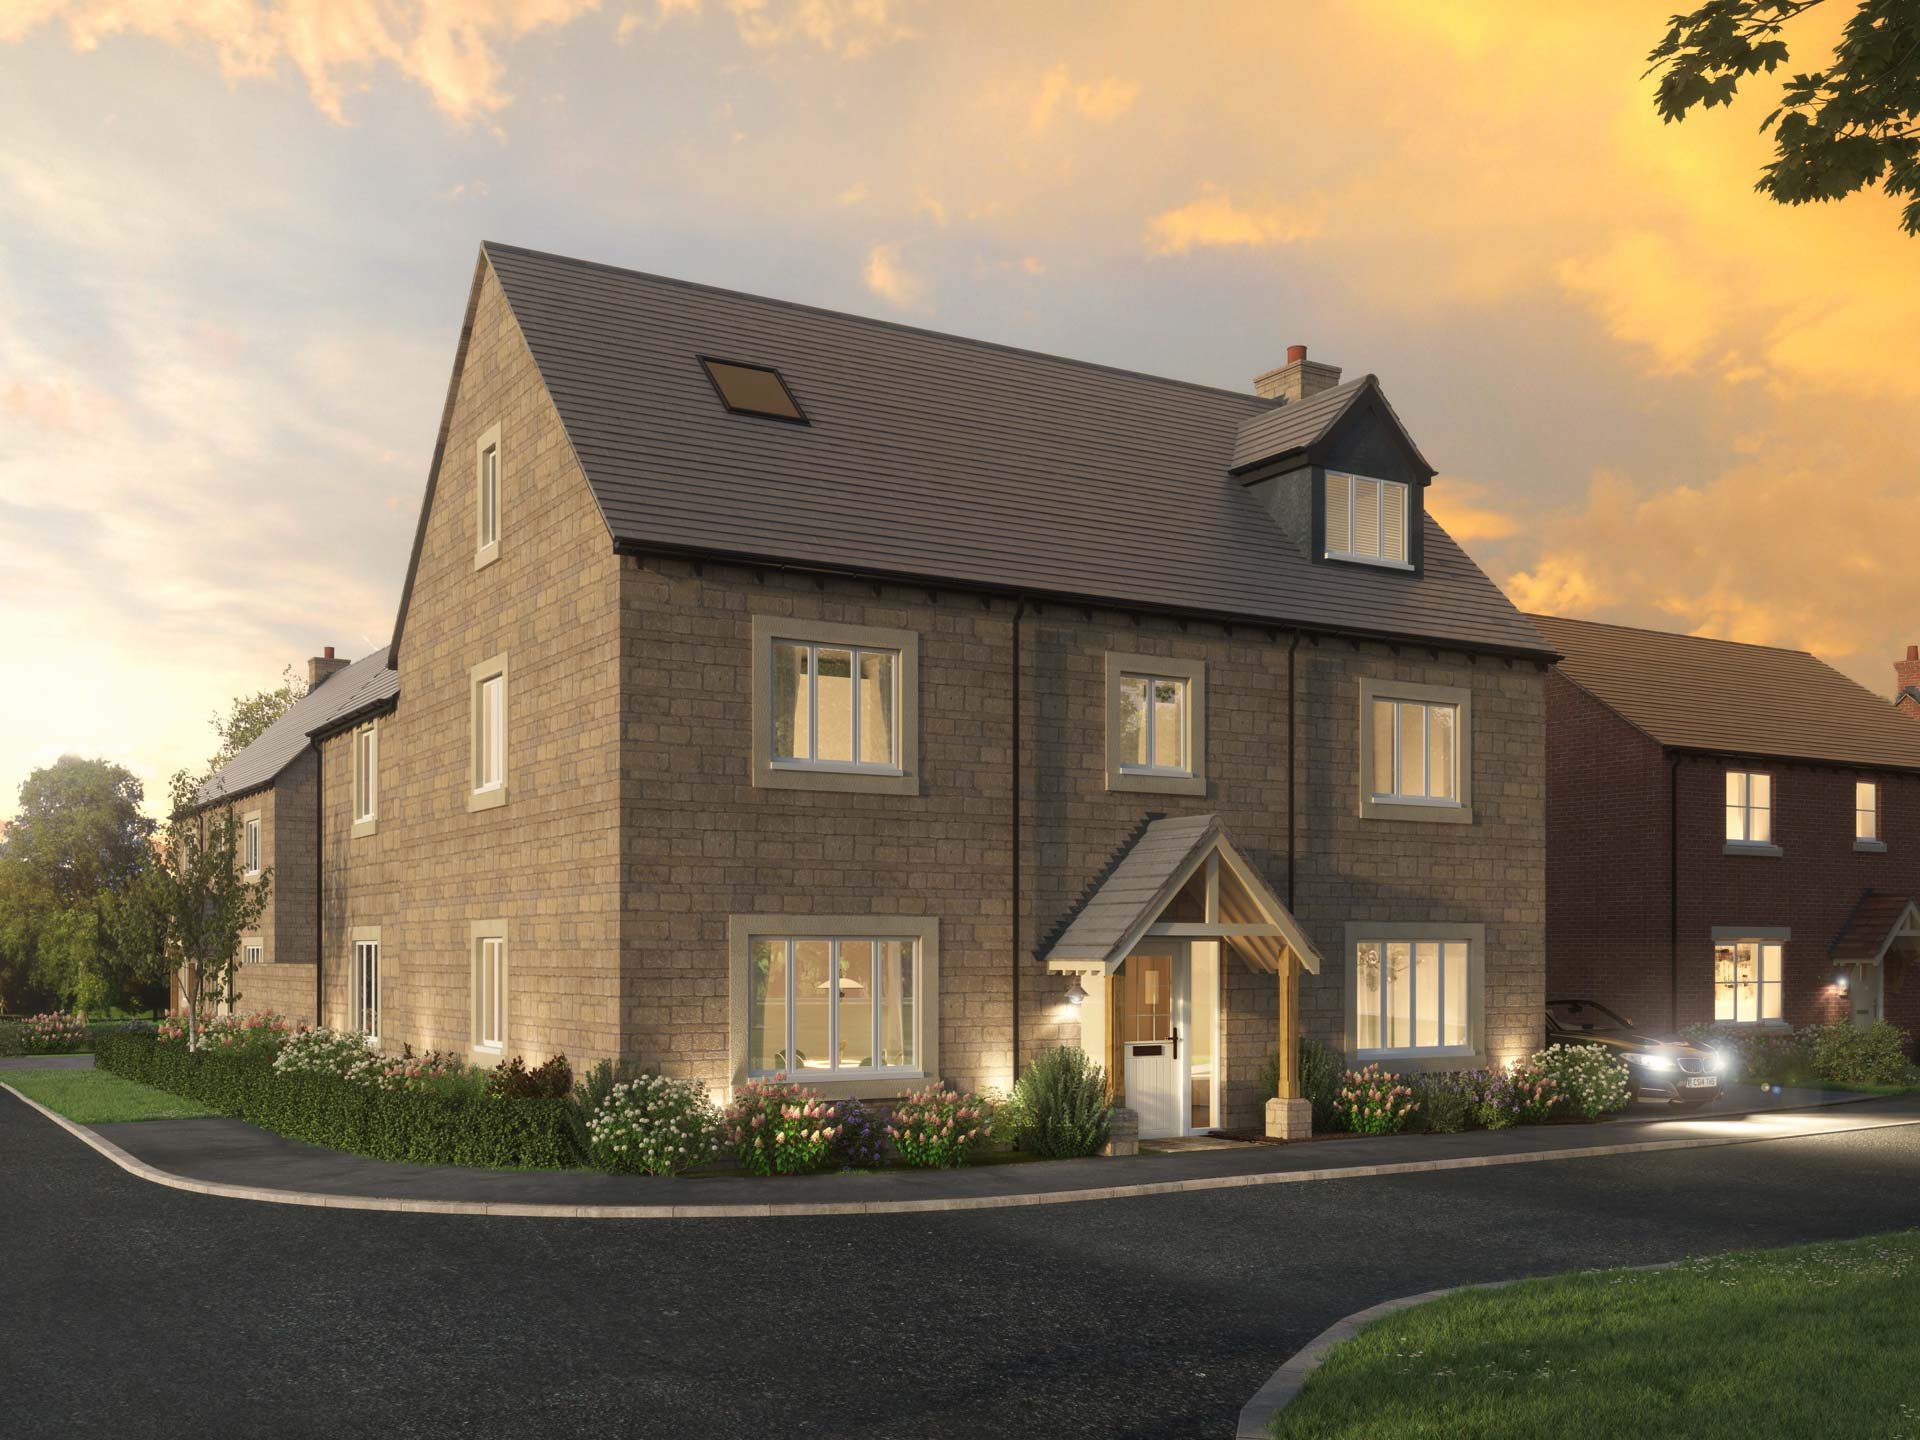 The Woodstock - 5 BEDROOM HOUSESHOMES 45 & 49